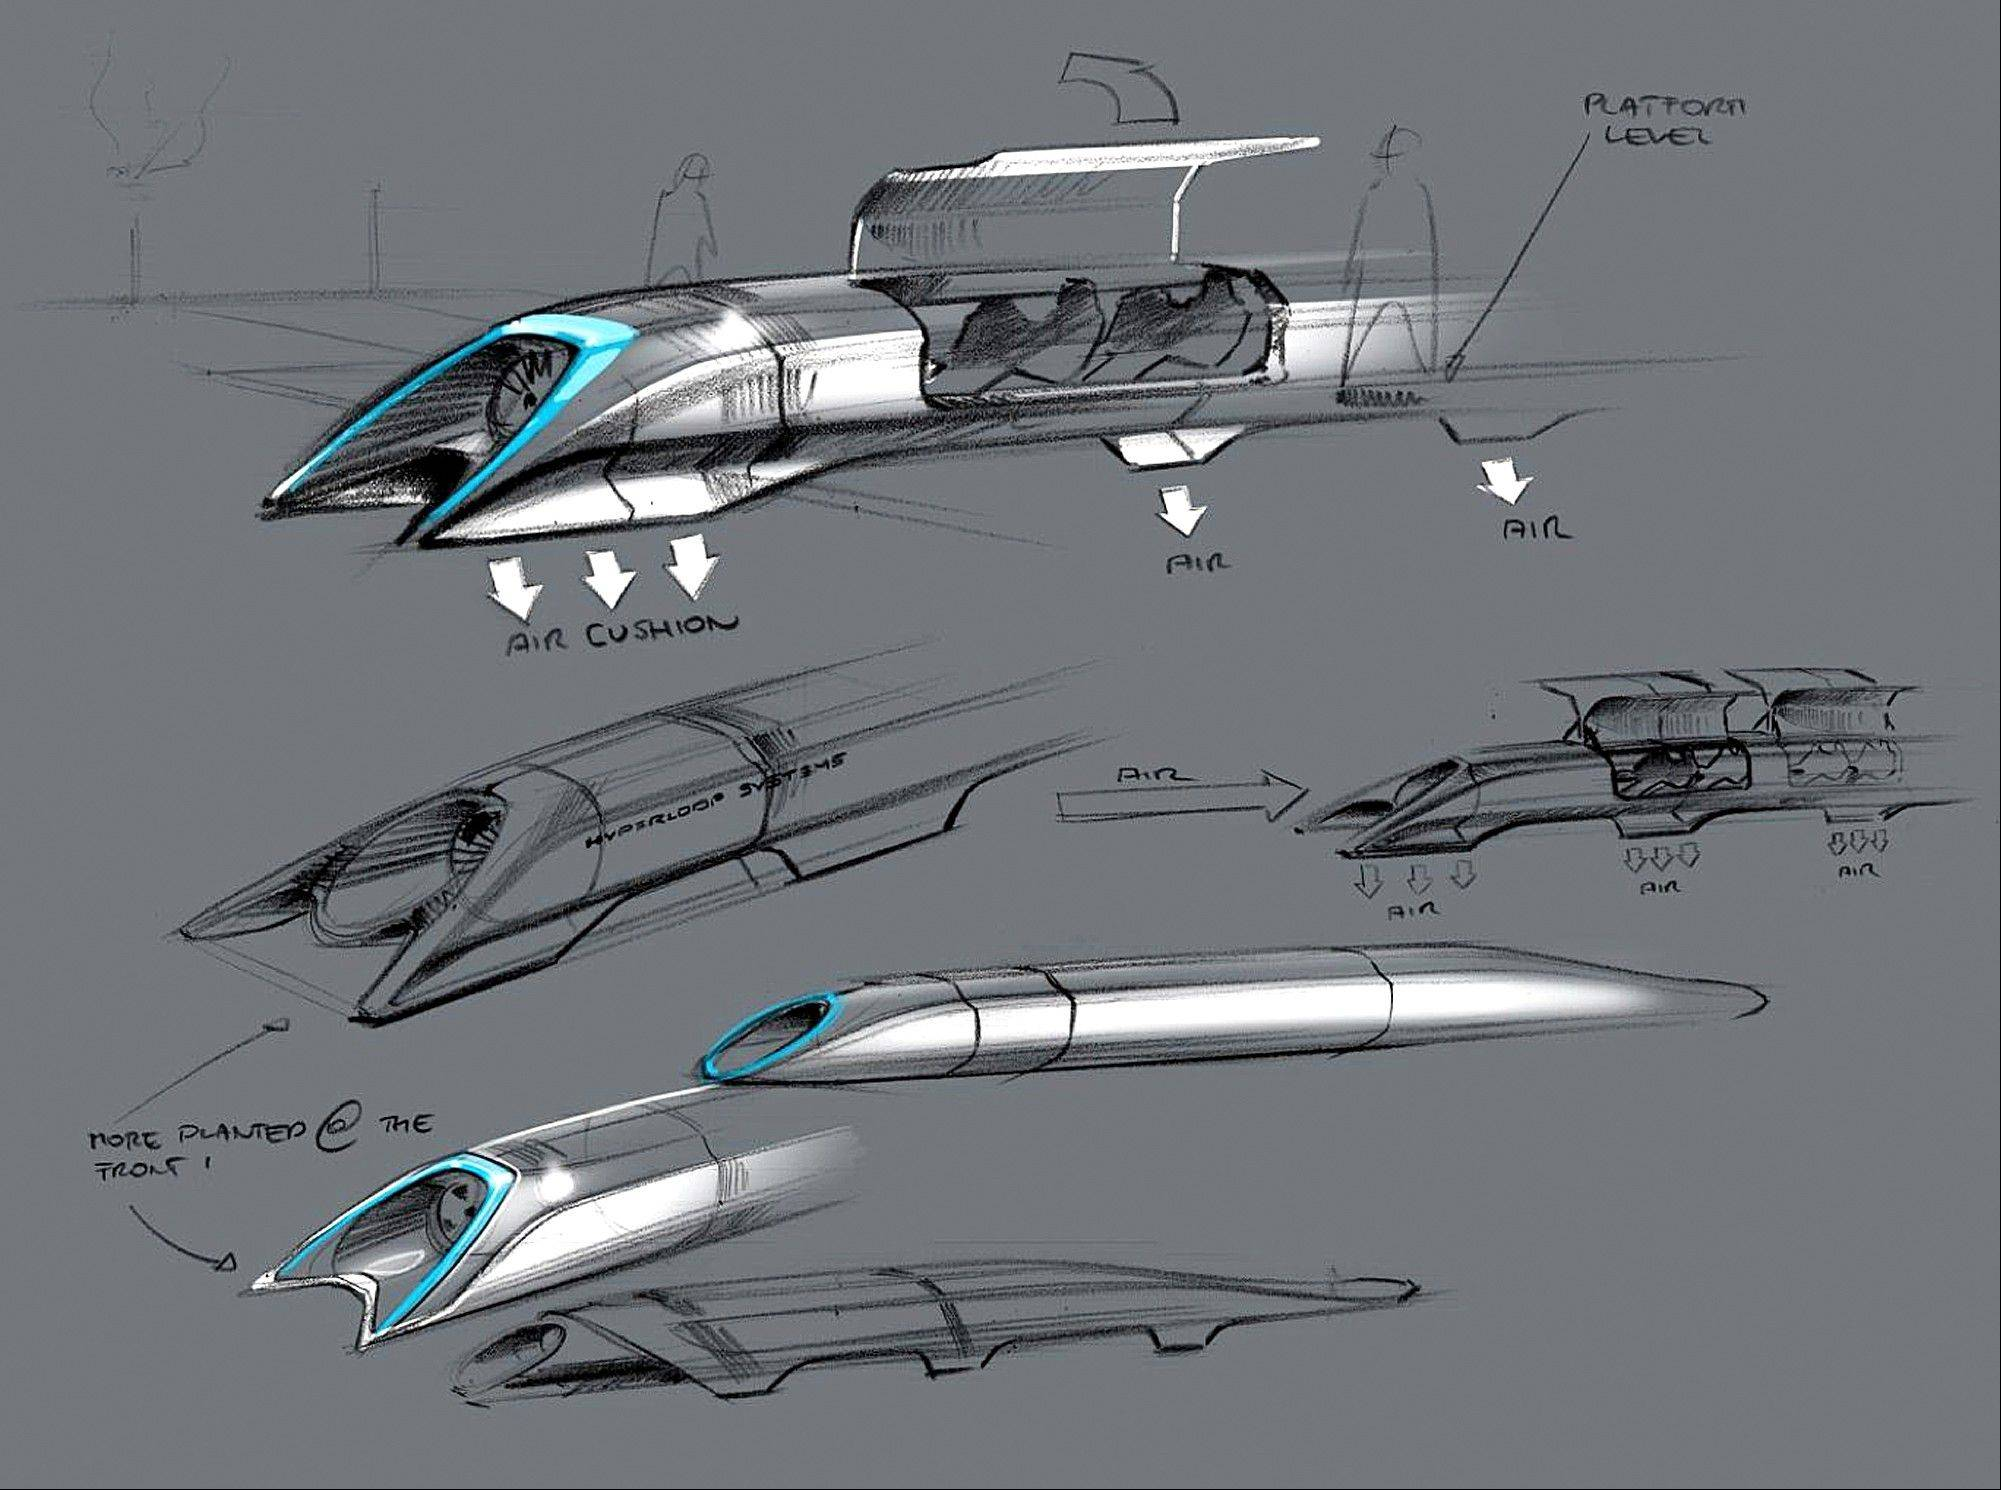 This image released by Tesla Motors shows a conceptual design sketch of the Hyperloop passenger transport capsule. Billionaire entrepreneur Elon Musk on Monday, Aug. 12, 2013 unveiled the concept for a transport system he says would make the nearly 400-mile trip in half the time it takes an airplane. The �Hyperloop� system would use a large tube. Inside, capsules would float on air, traveling at over 700 miles per hour.